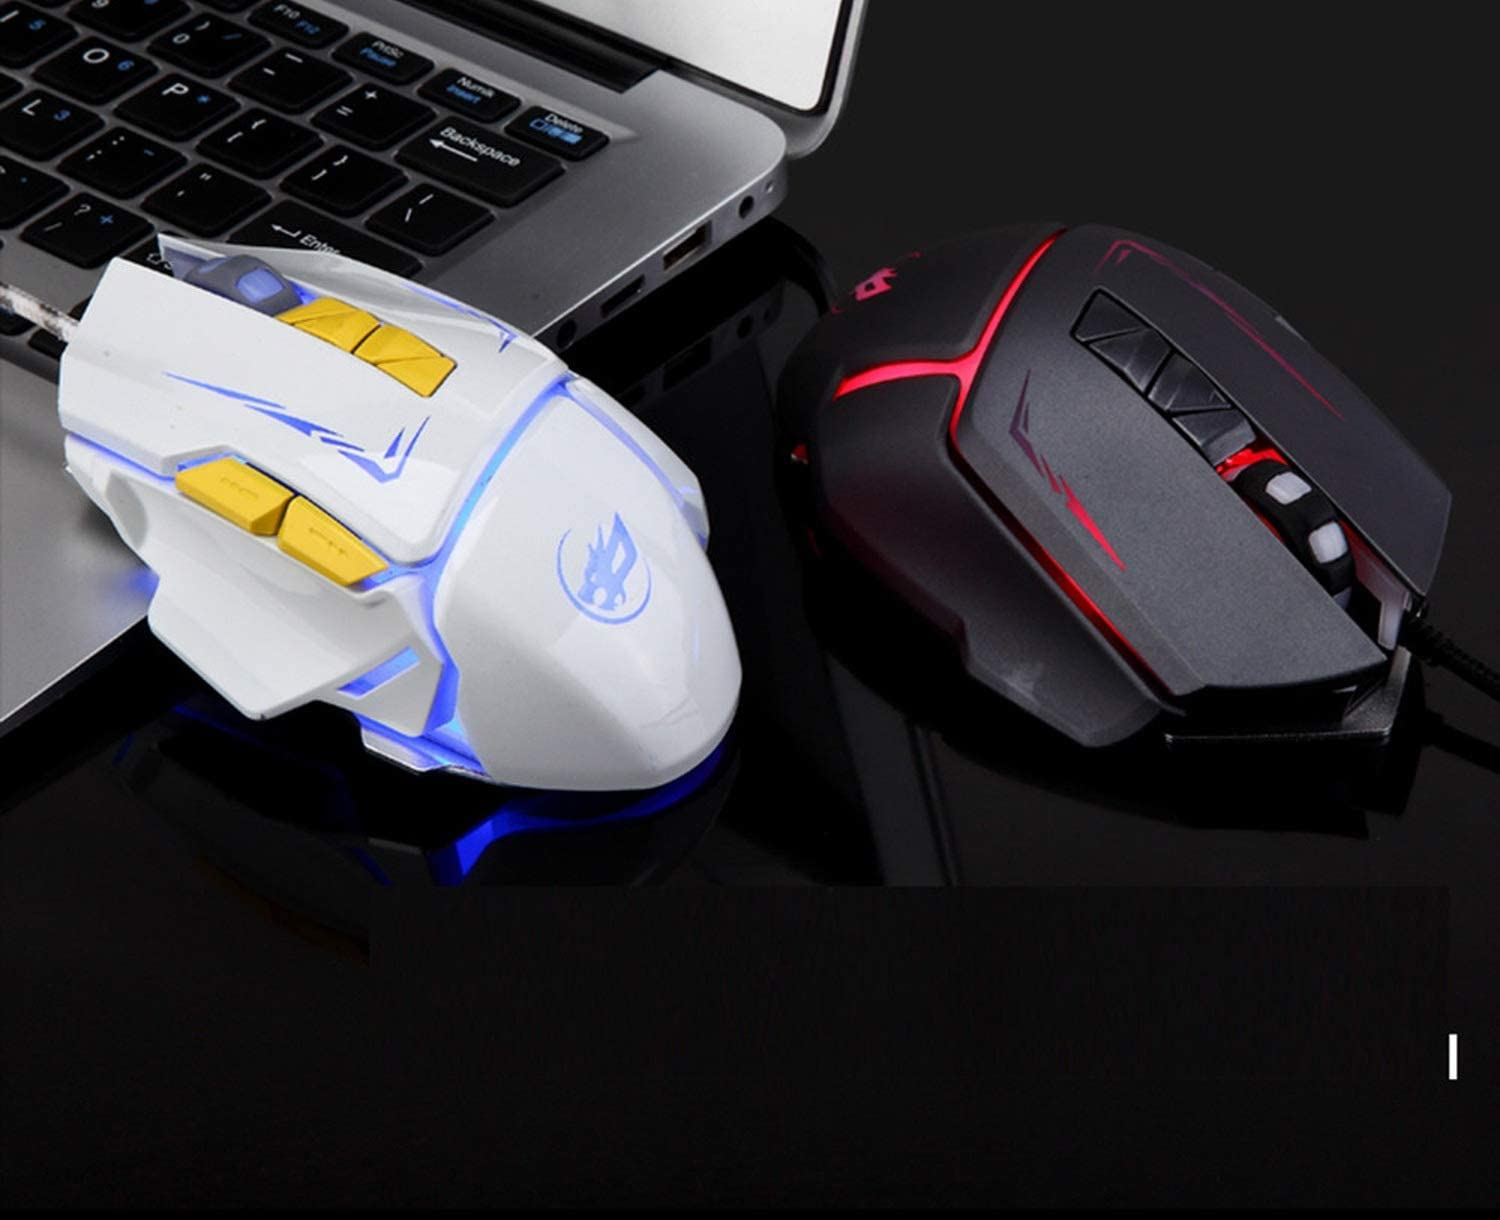 7Color LED 3200 DPI 6Button Wired Macro Definition Progming Gaming Mini Mice USB Receiver for Laptop PC Desktop,White,